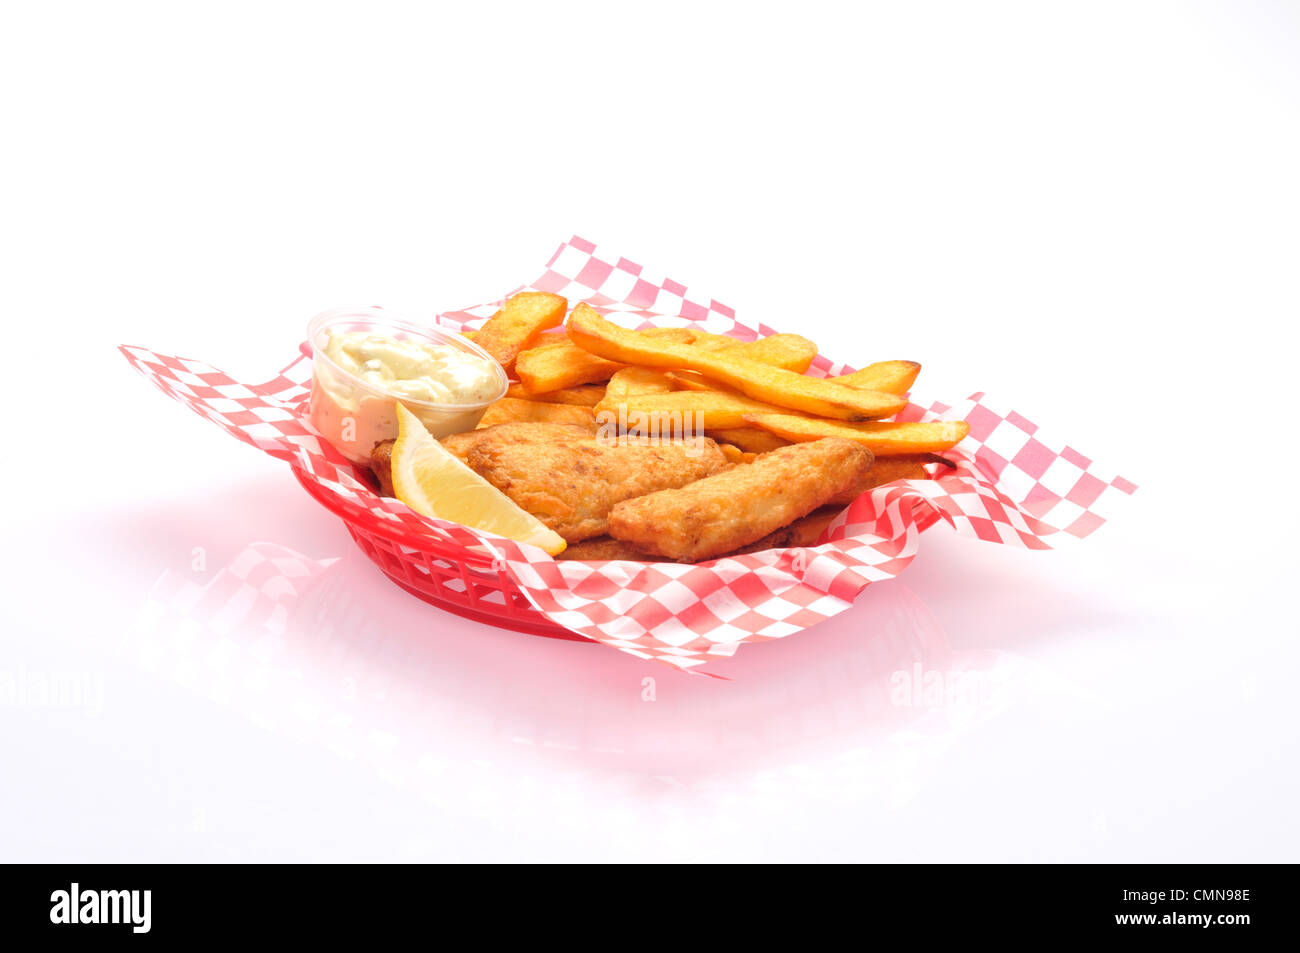 Basket of fish and chips with tartar sauce and lemon wedge - Stock Image